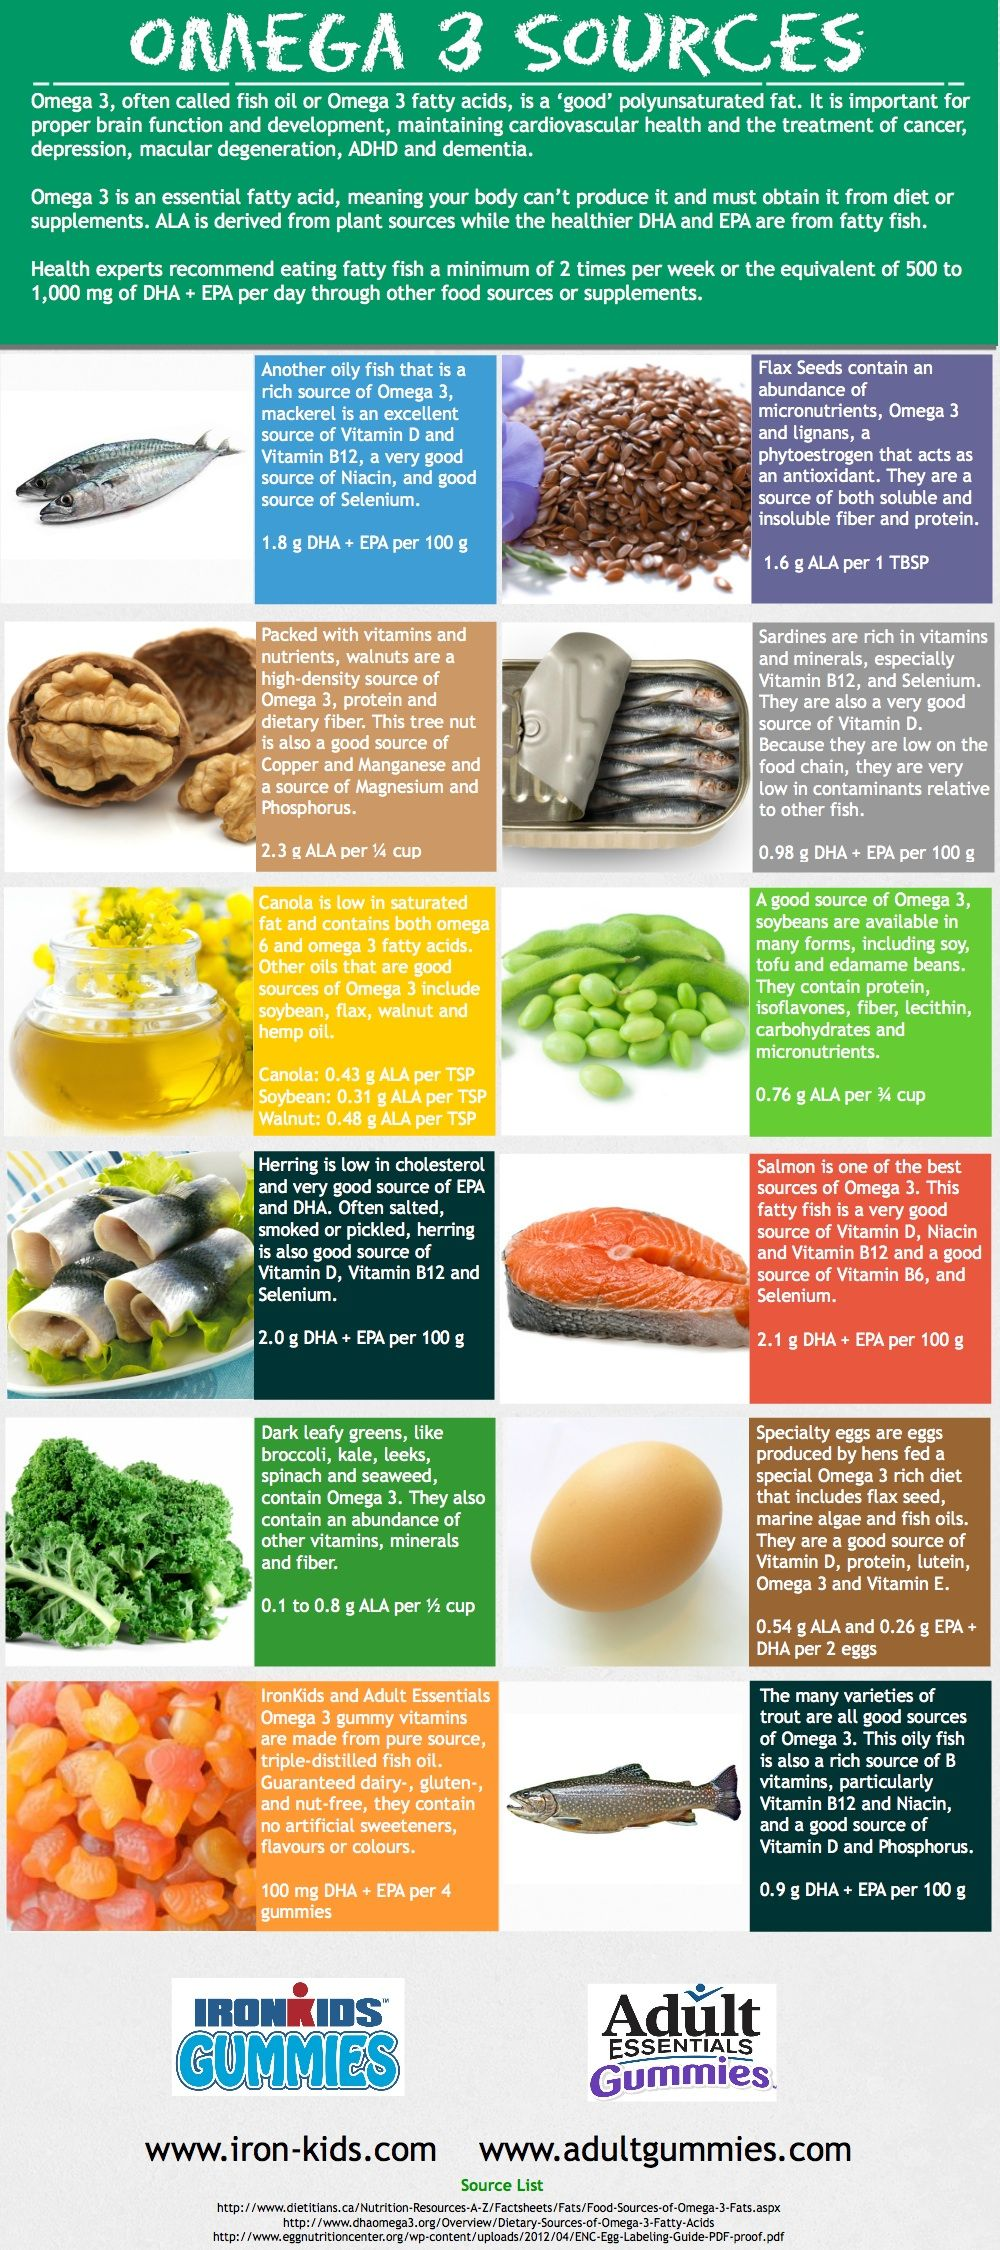 How To Get More Omega 3 In My Diet